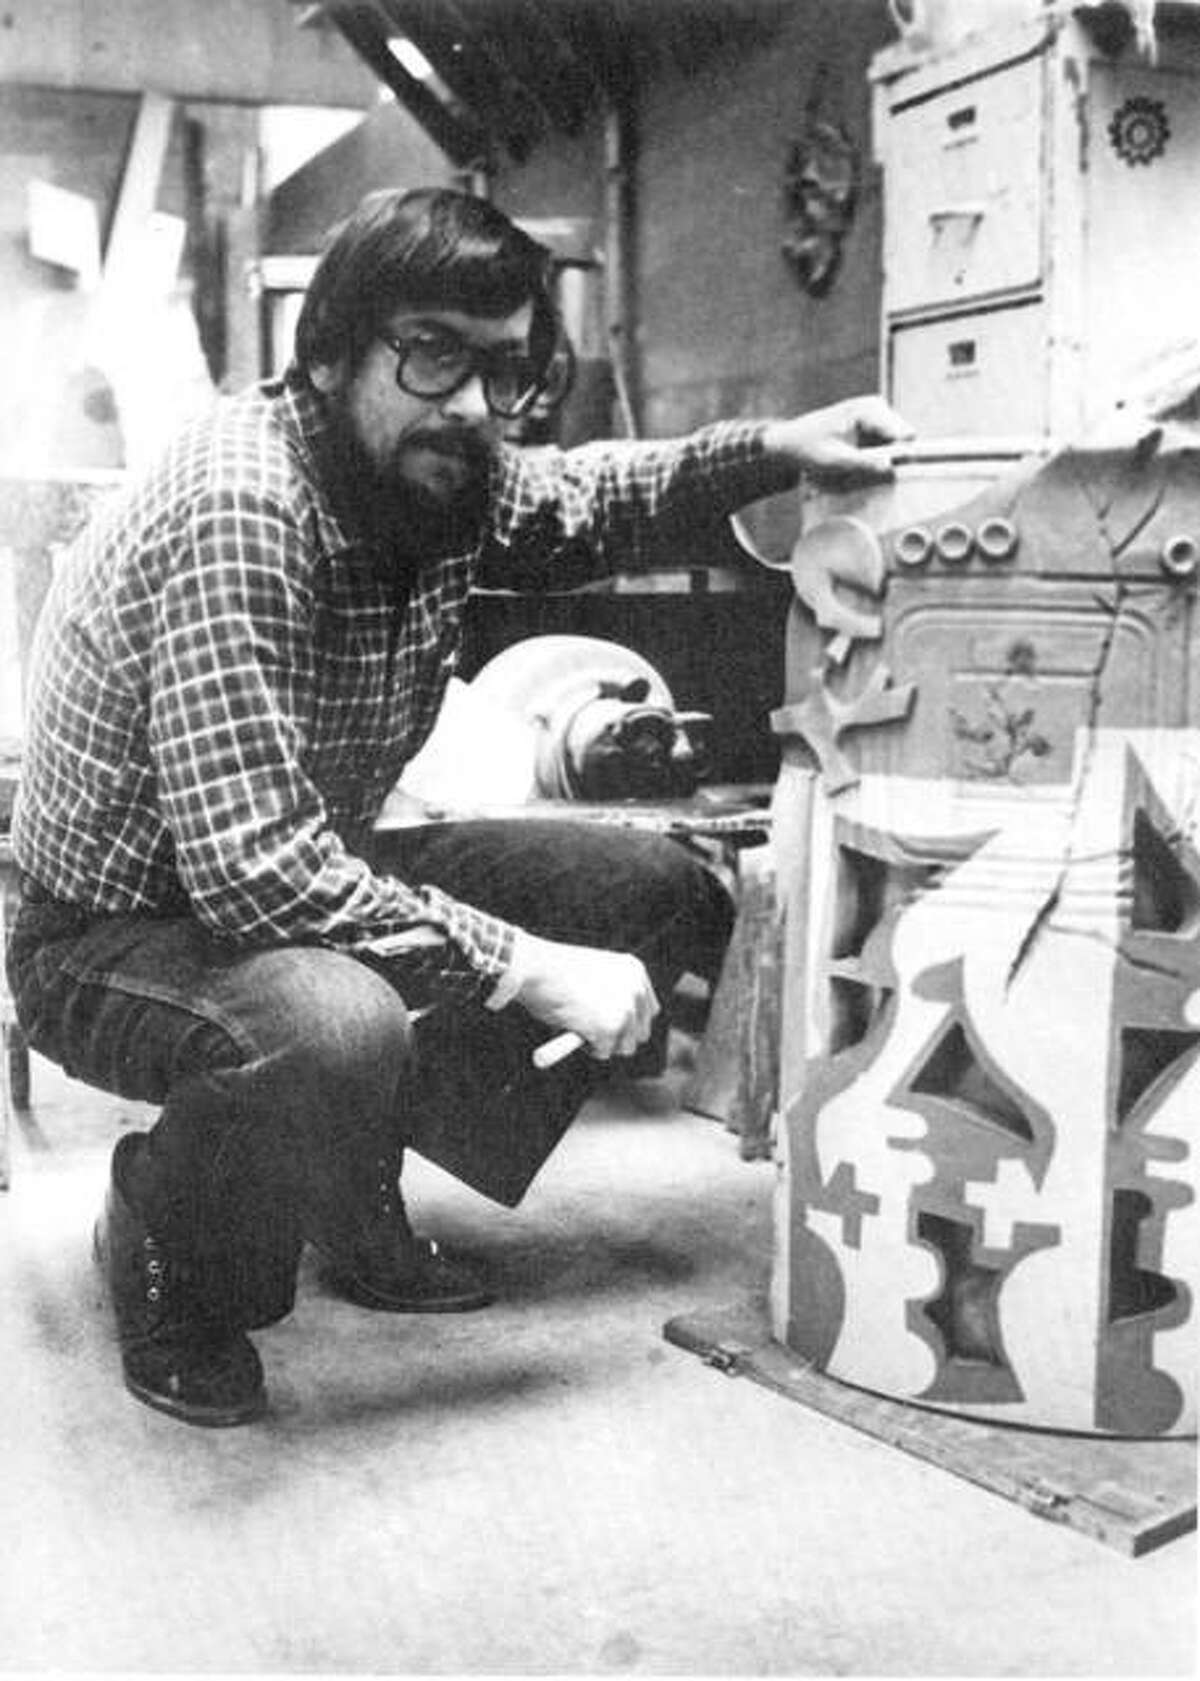 Dr. Peter Slavish, a beloved art Blackburn College art professor who died in 1996, is being remembered by Carl and Cynda Zeidler with a $500,000 pledge to the school, creating the Peter Slavish Endowed Professorship in Art at Blackburn College.